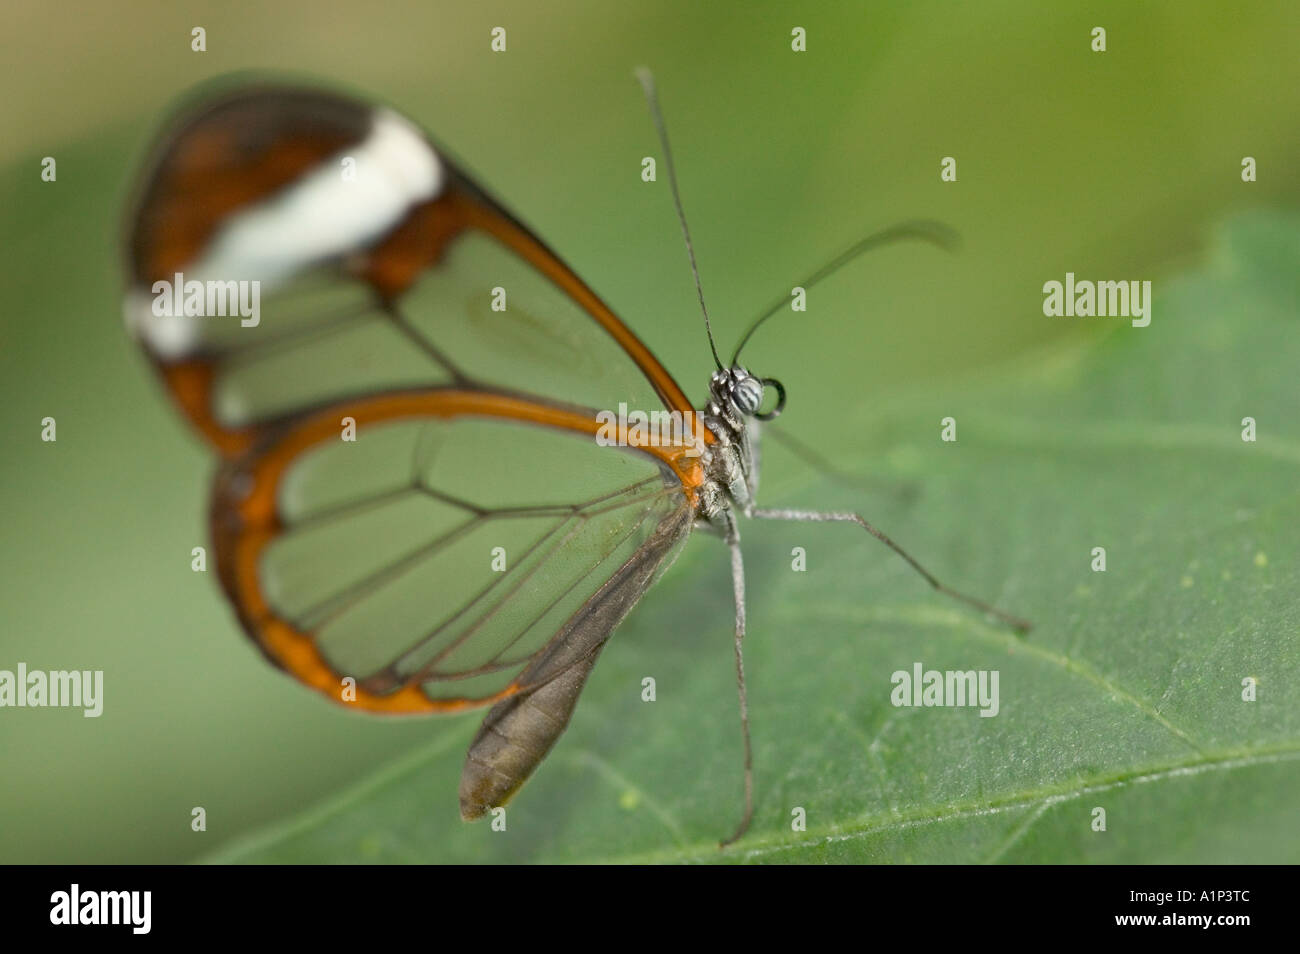 a glass wing butterlfy - Stock Image